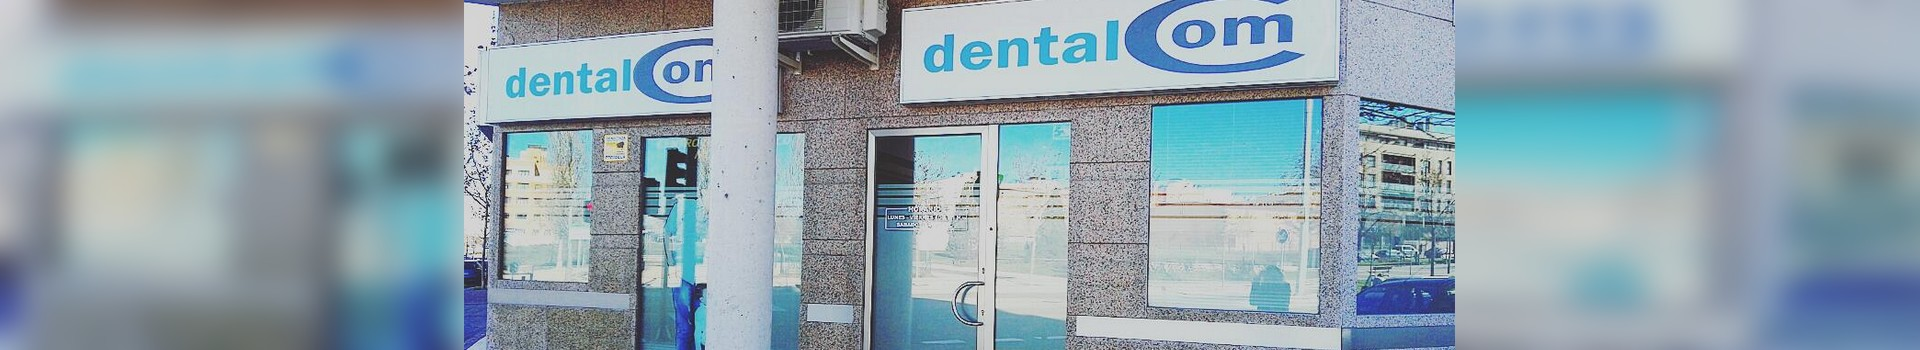 clinica dental en zona norte, clinica dental en san sebastian de los reyes